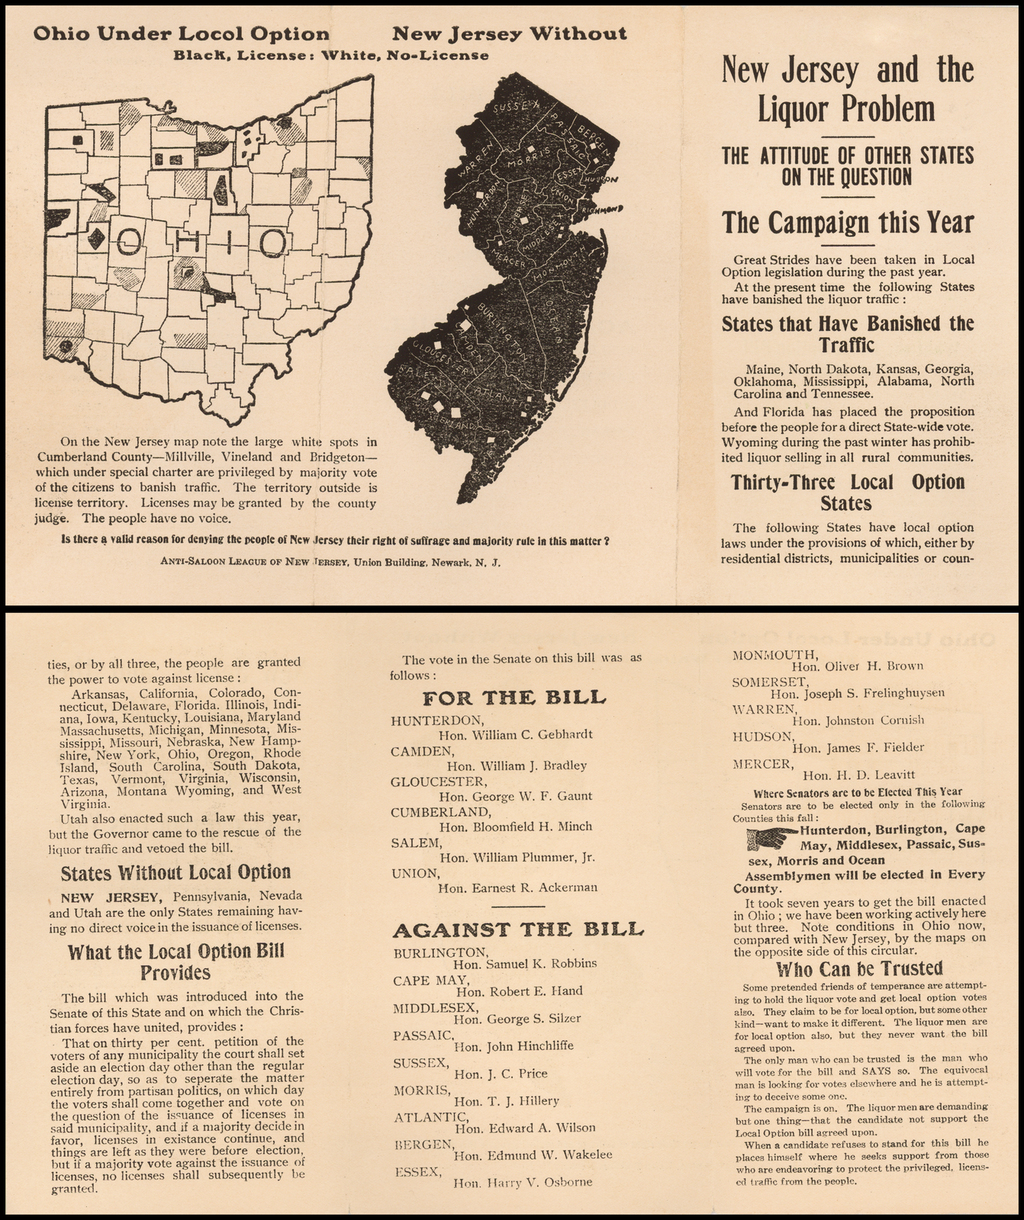 New Jersey and the Liquor Problem (with New Jersey map and Ohio map) By Anti-Saloon League of New Jersey